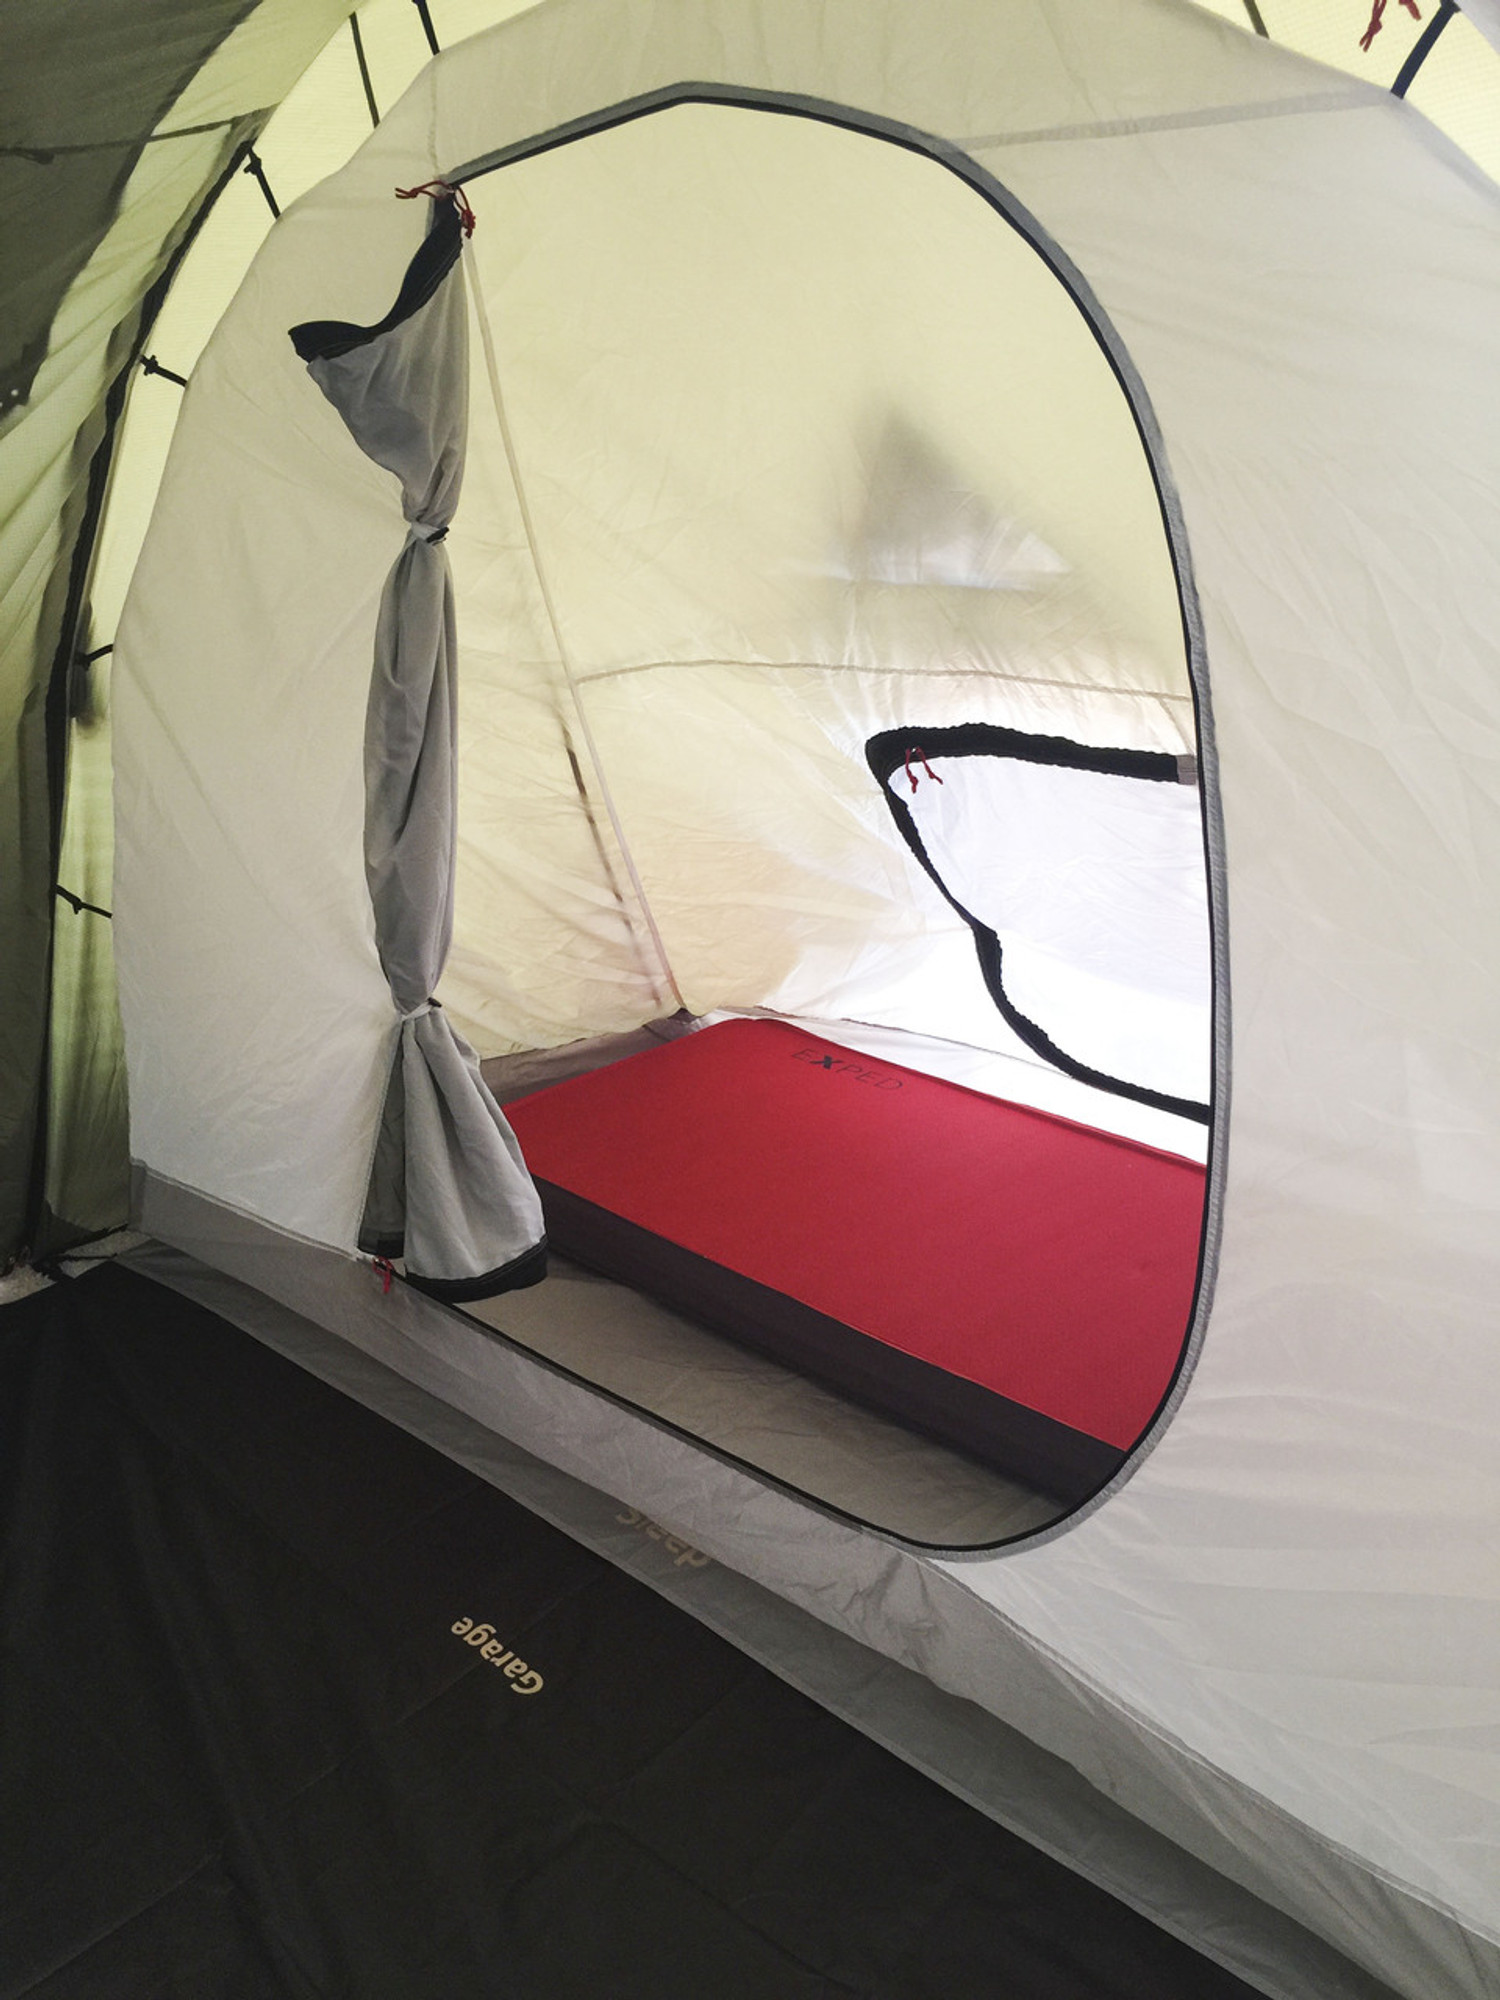 ... Inner Sleeping Sleeping section is double walled the inner hangs from the outer tent via & Redverz Gear - Solo Expedition Motorcycle Tent